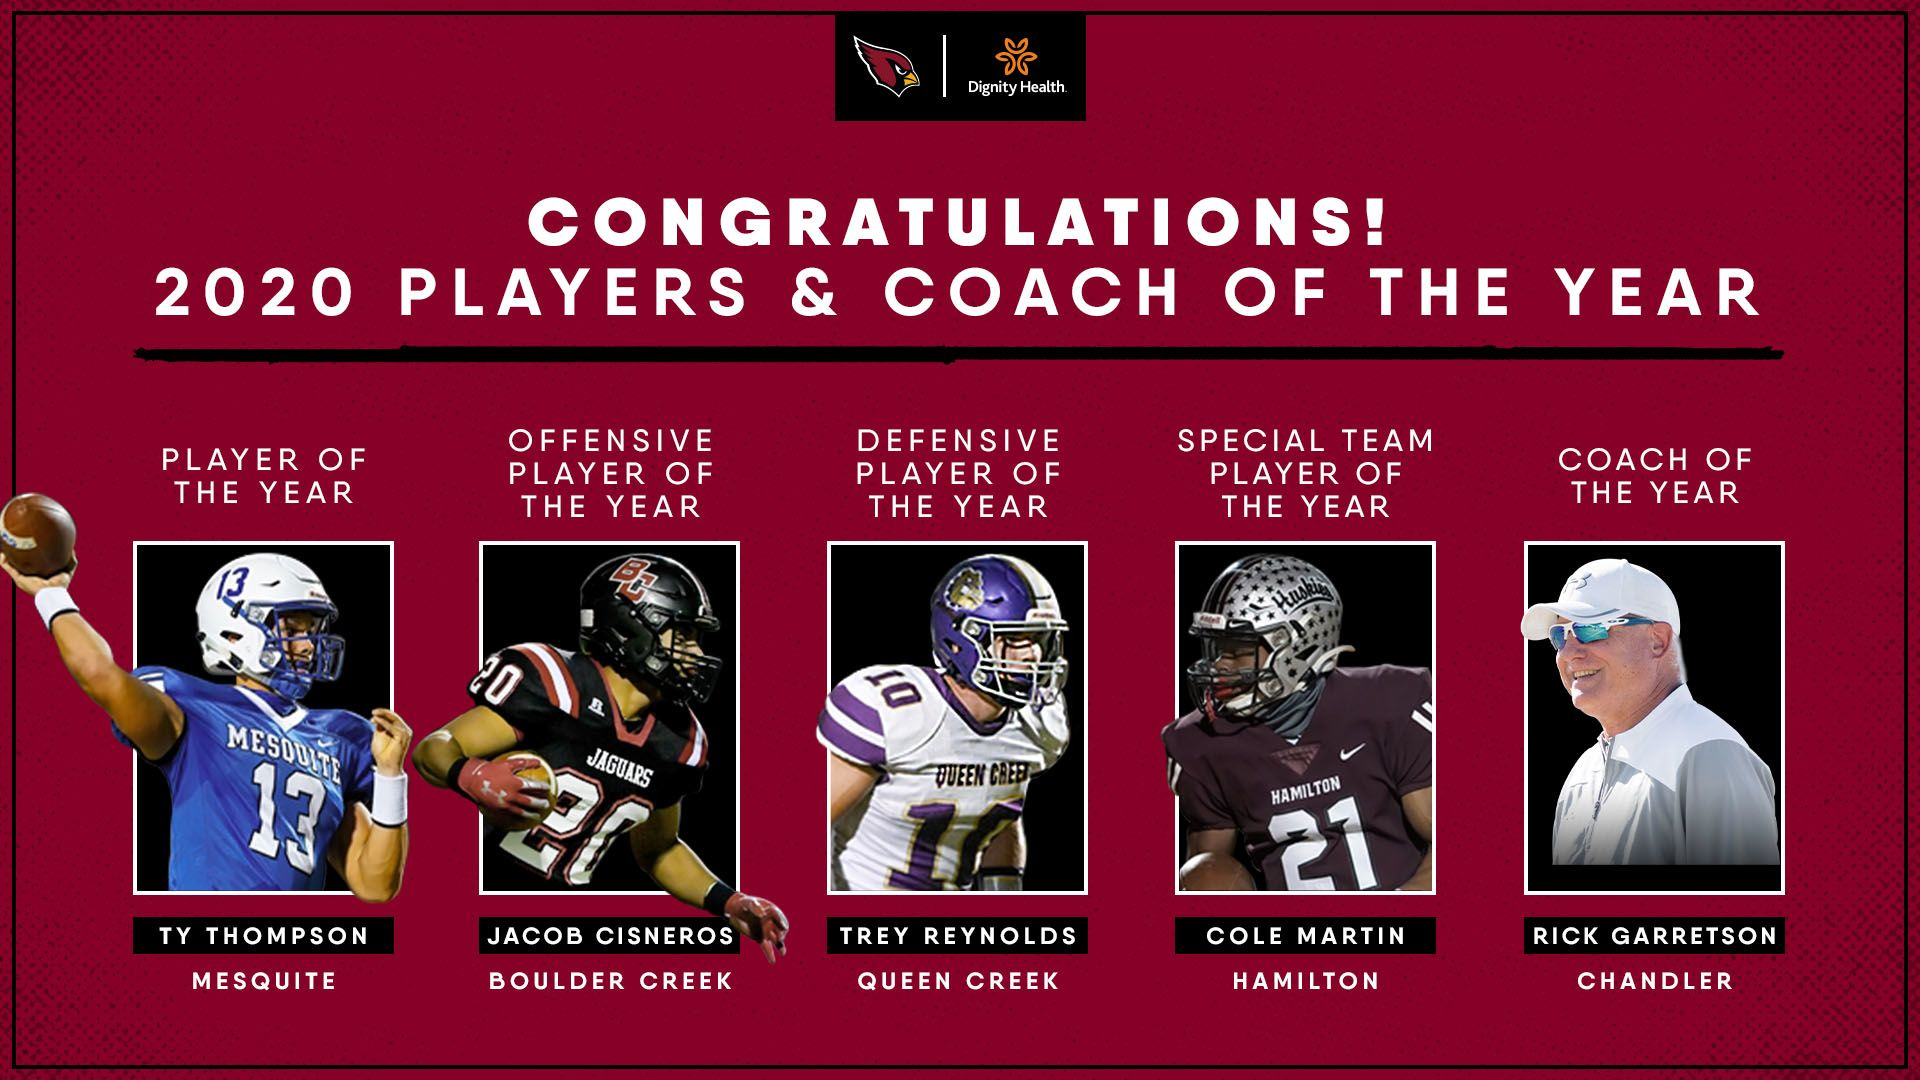 2020 Cardinals Community Players and Coach of the Year